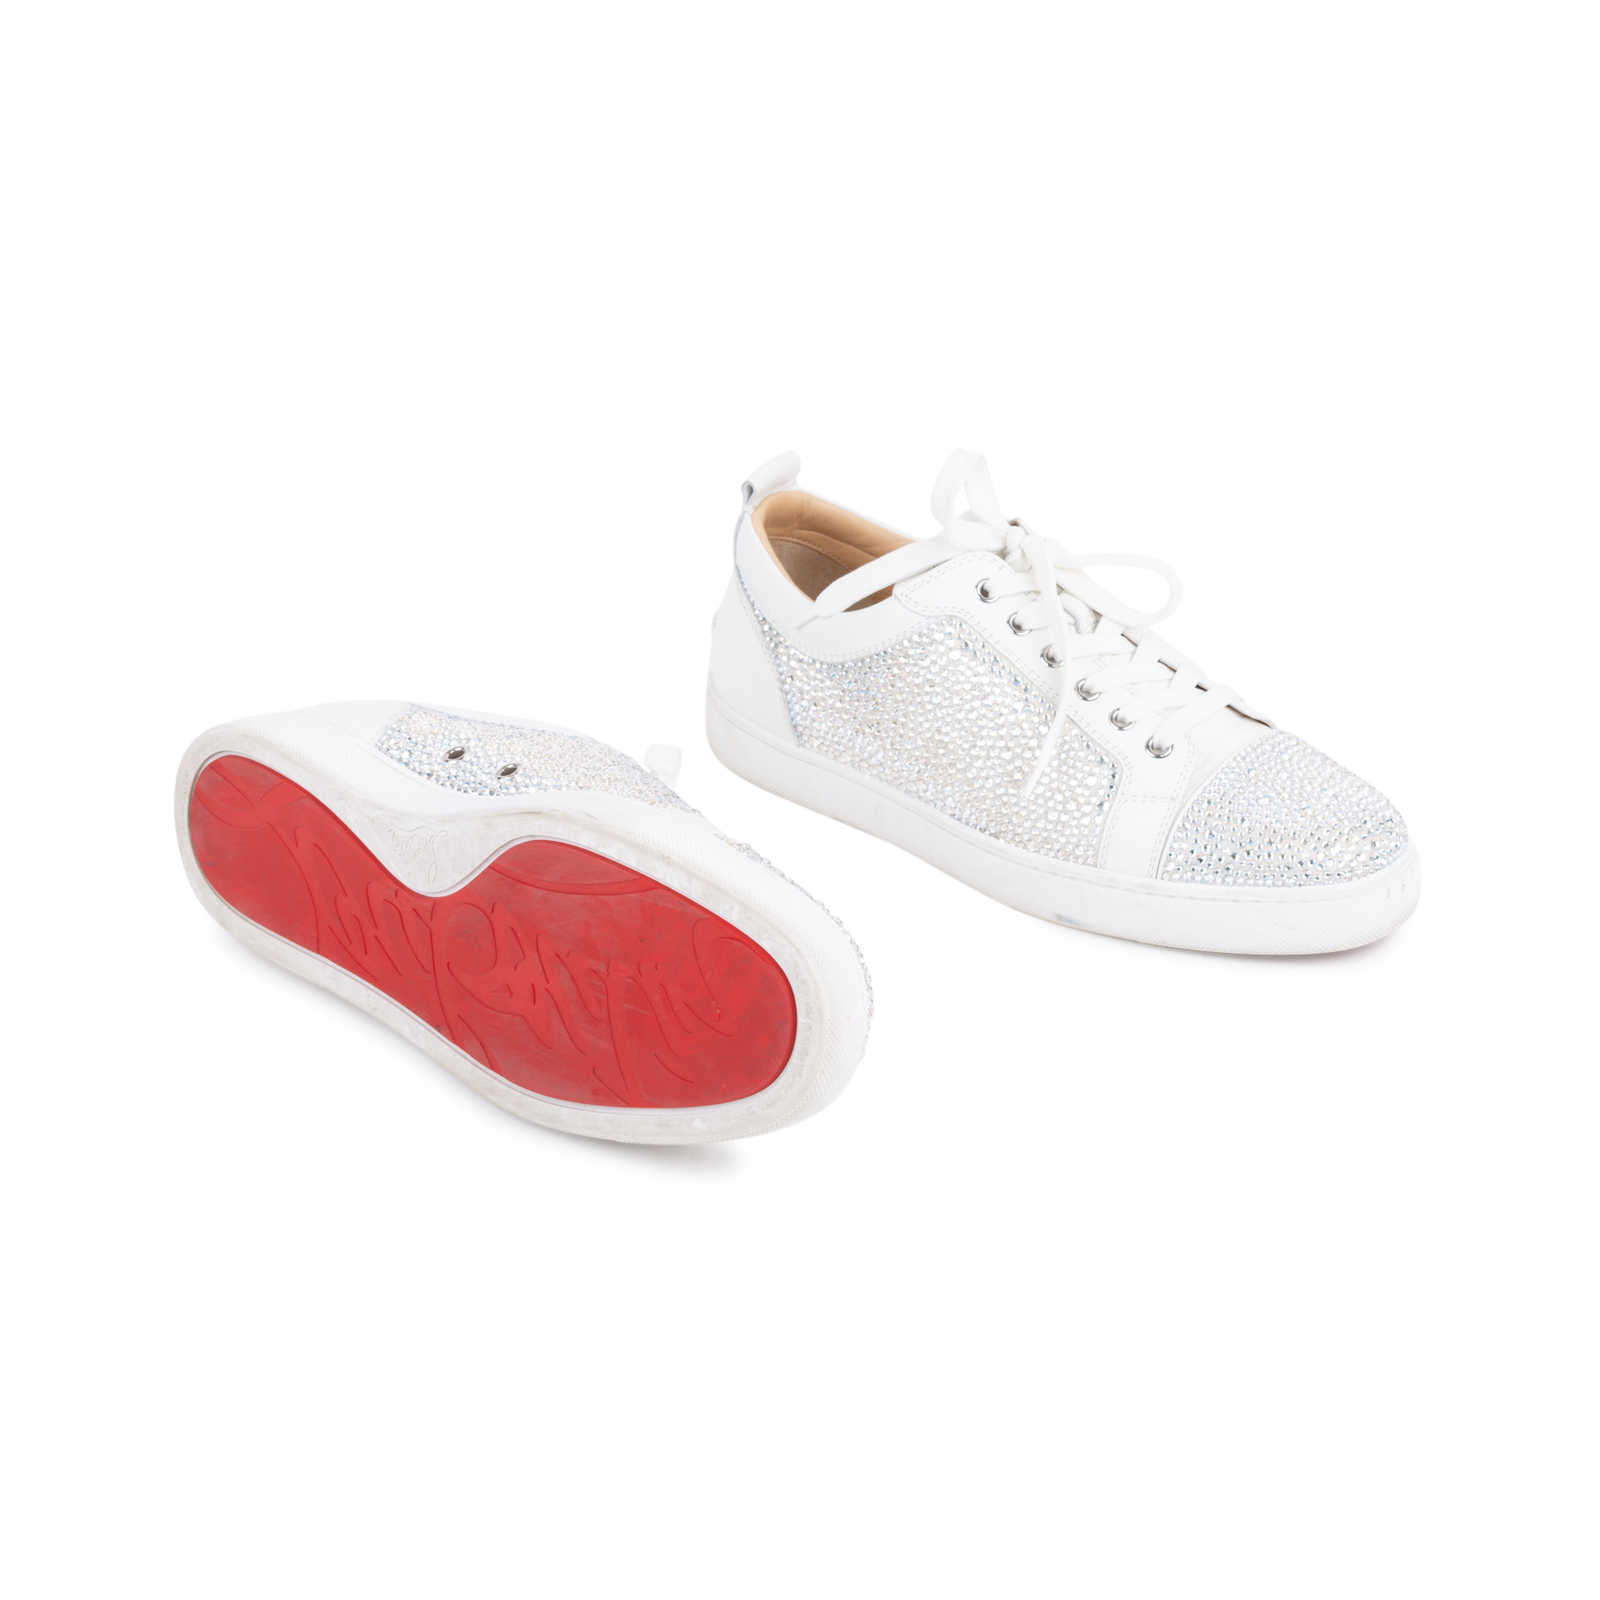 a0b5c215b886 ... Authentic Second Hand Christian Louboutin Louis Junior Strass Leather  Sneakers (PSS-601-00003 ...